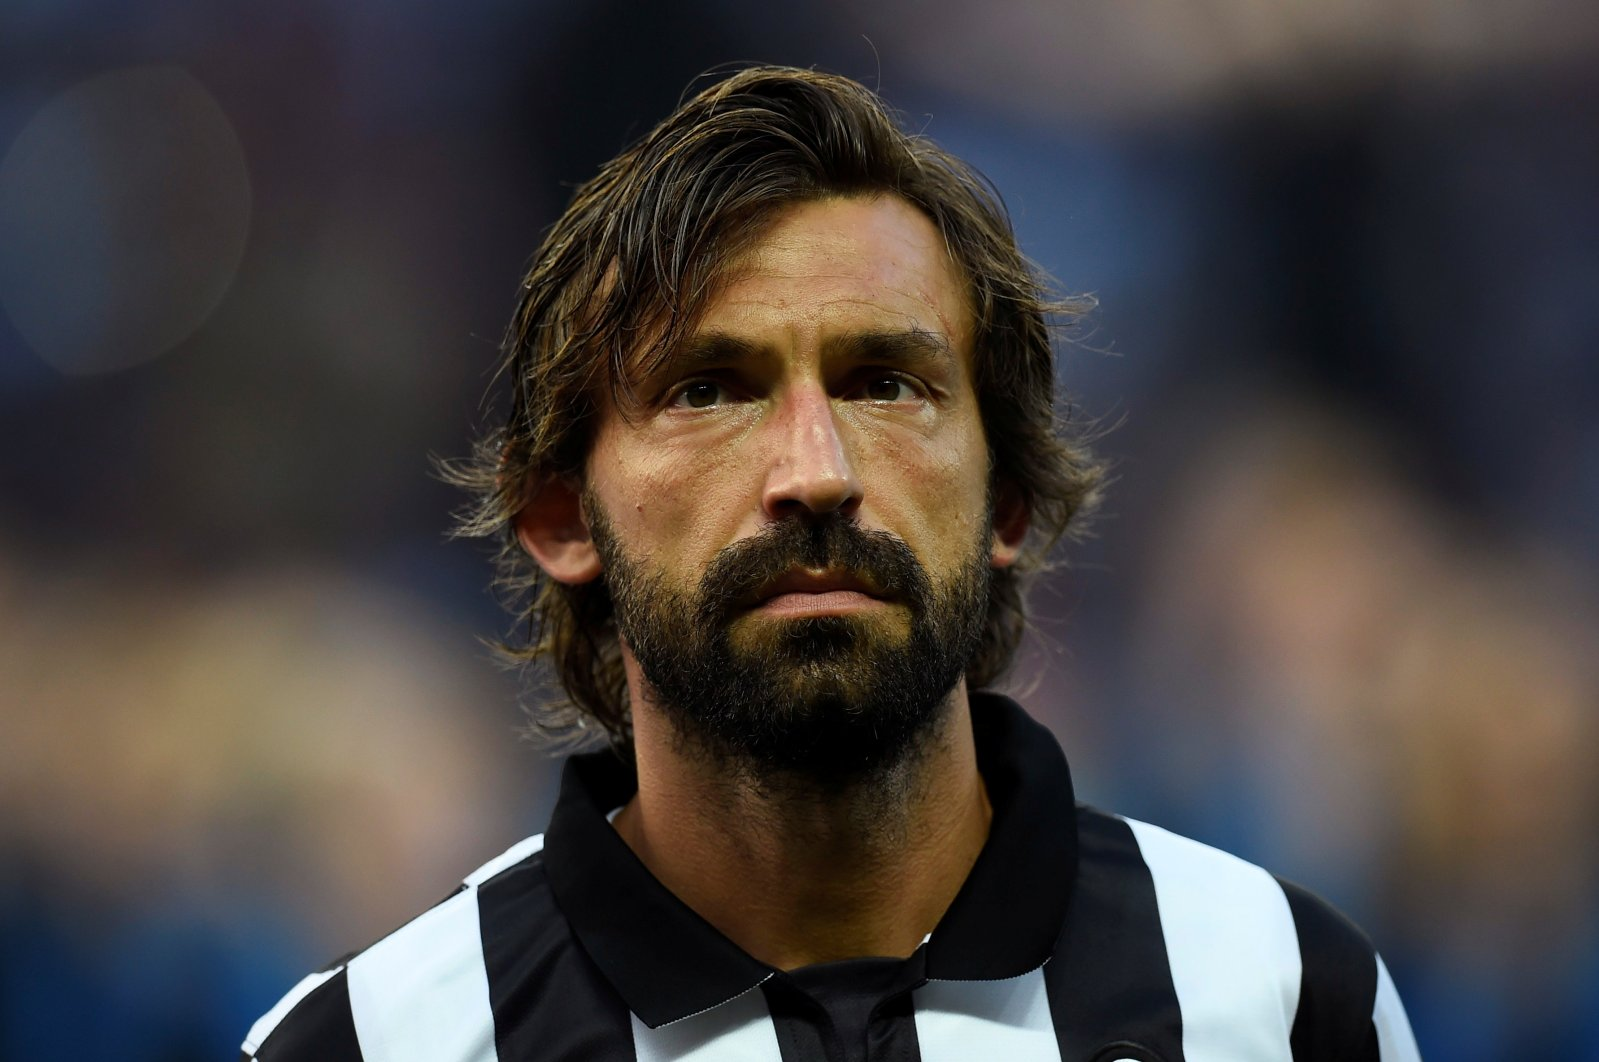 Juventus' Andrea Pirlo before the match in Berlin,Germany. (Reuters Photo)